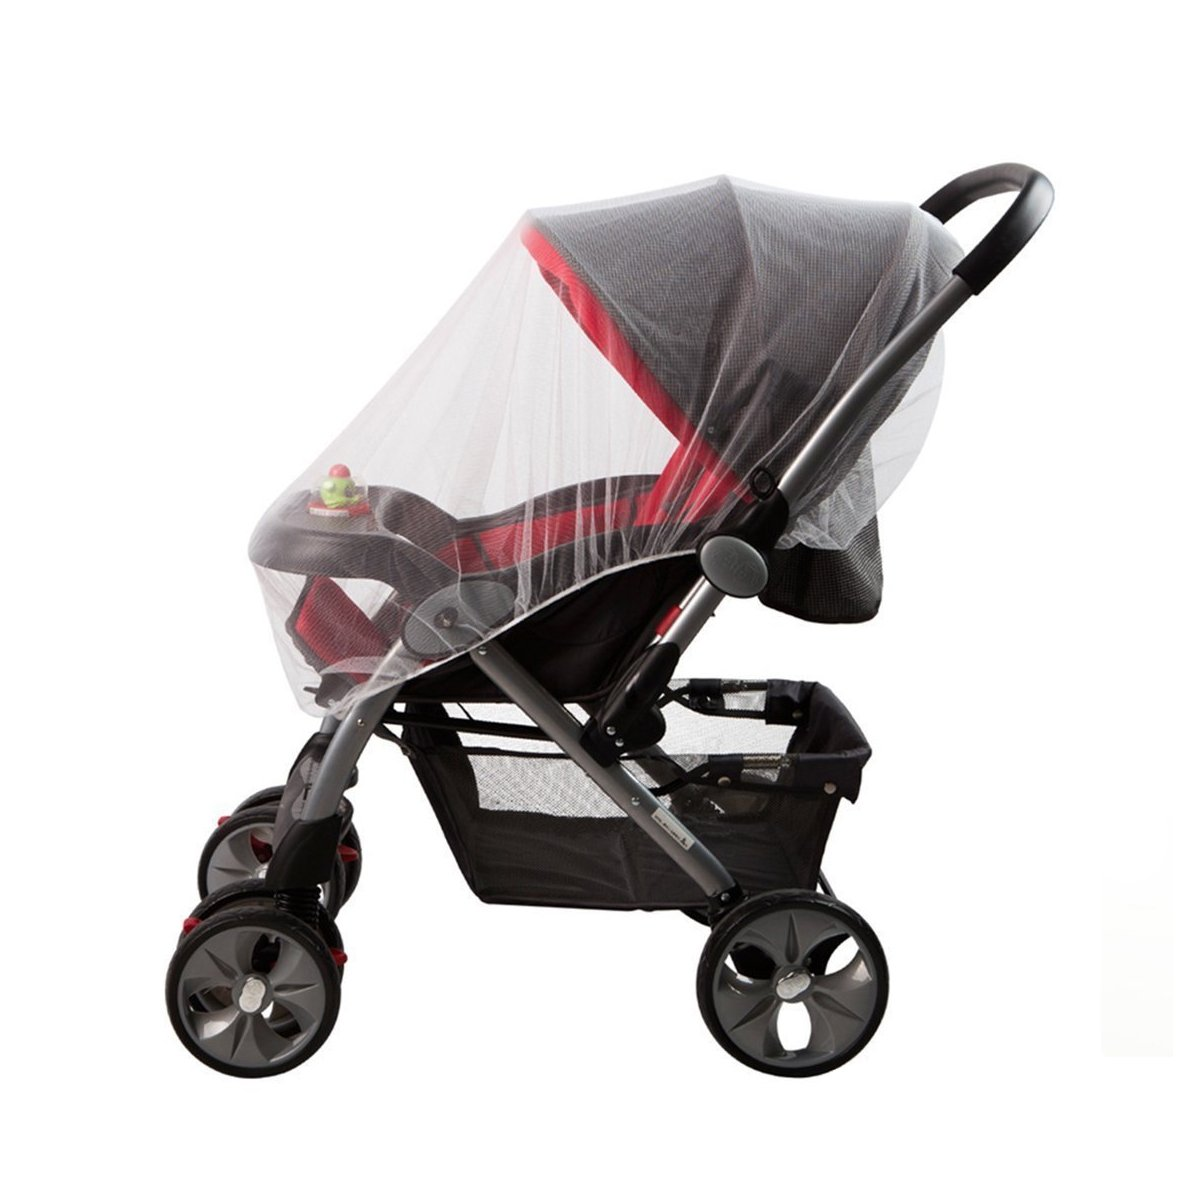 Baby Mosquito Net for Strollers, Carriers, Car Seats, Cradles. Fits Most Cribs, Made of White, Portable & Durable Baby Insect Netting Marrywindix